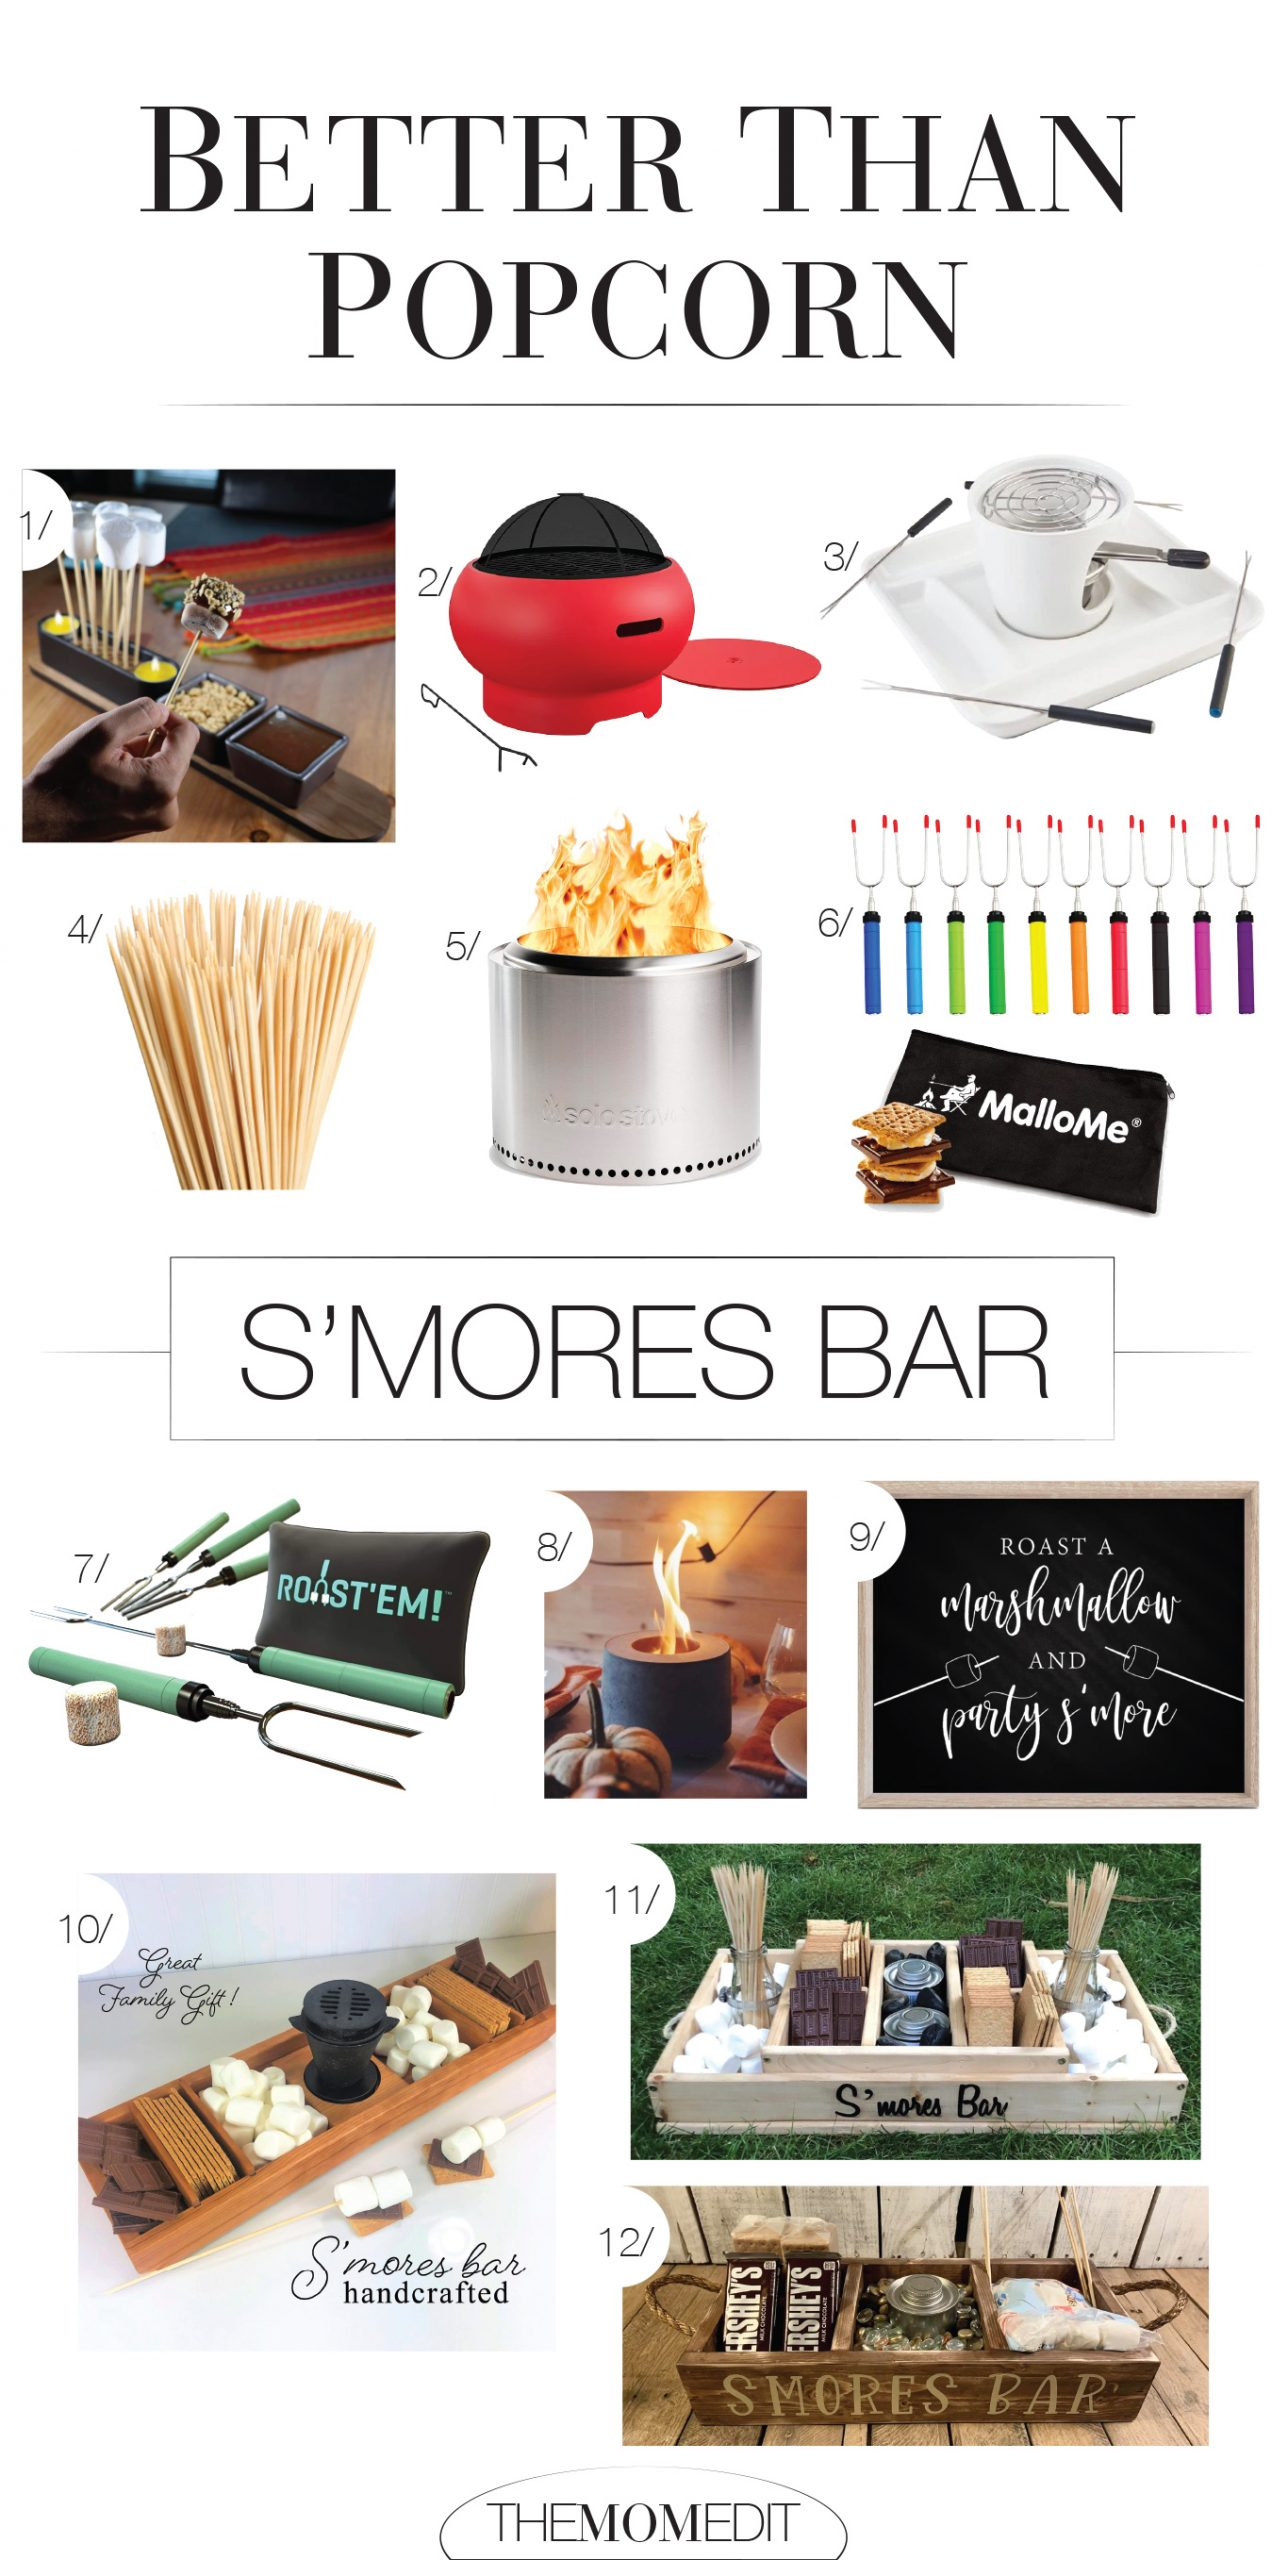 There's something magical about making S'mores. We can do it anywhere: outdoor fire pit to fancy tea light, with a sign or for a party. DIY fun, inside.